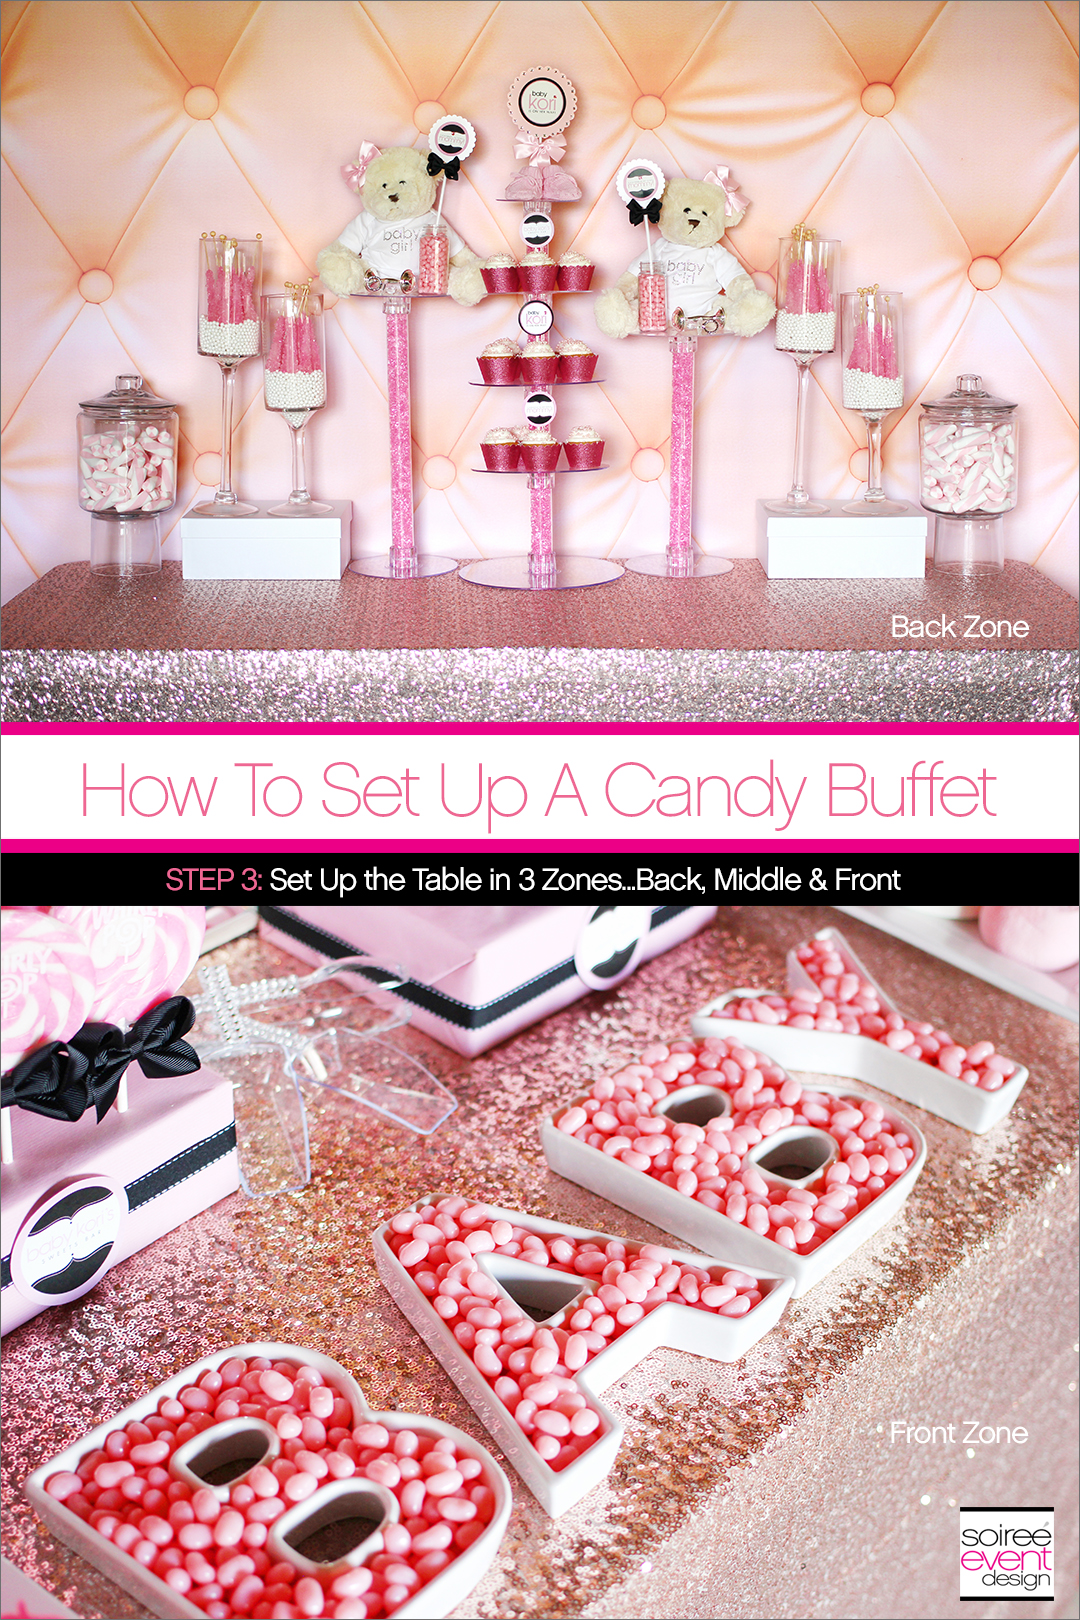 How to Set Up a Candy Buffet Step 3